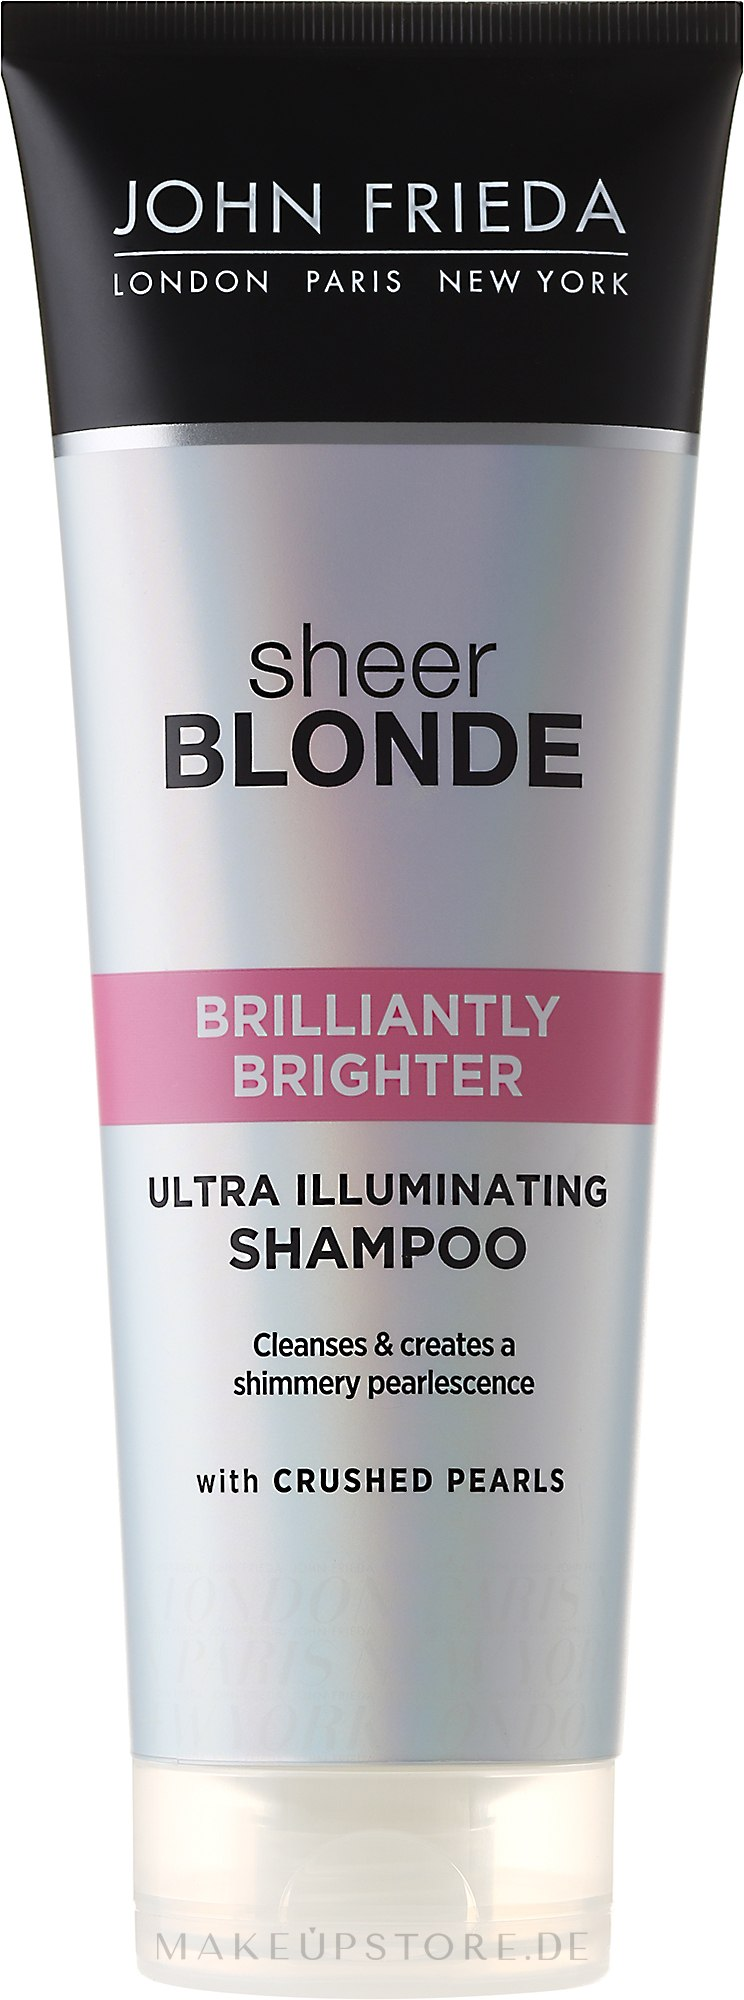 Shampoo zum Beleben von blonder Haarfarbe mit perlmutternem Glanz - John Frieda Sheer Blonde Brilliantly Brighter Shampoo — Bild 250 ml